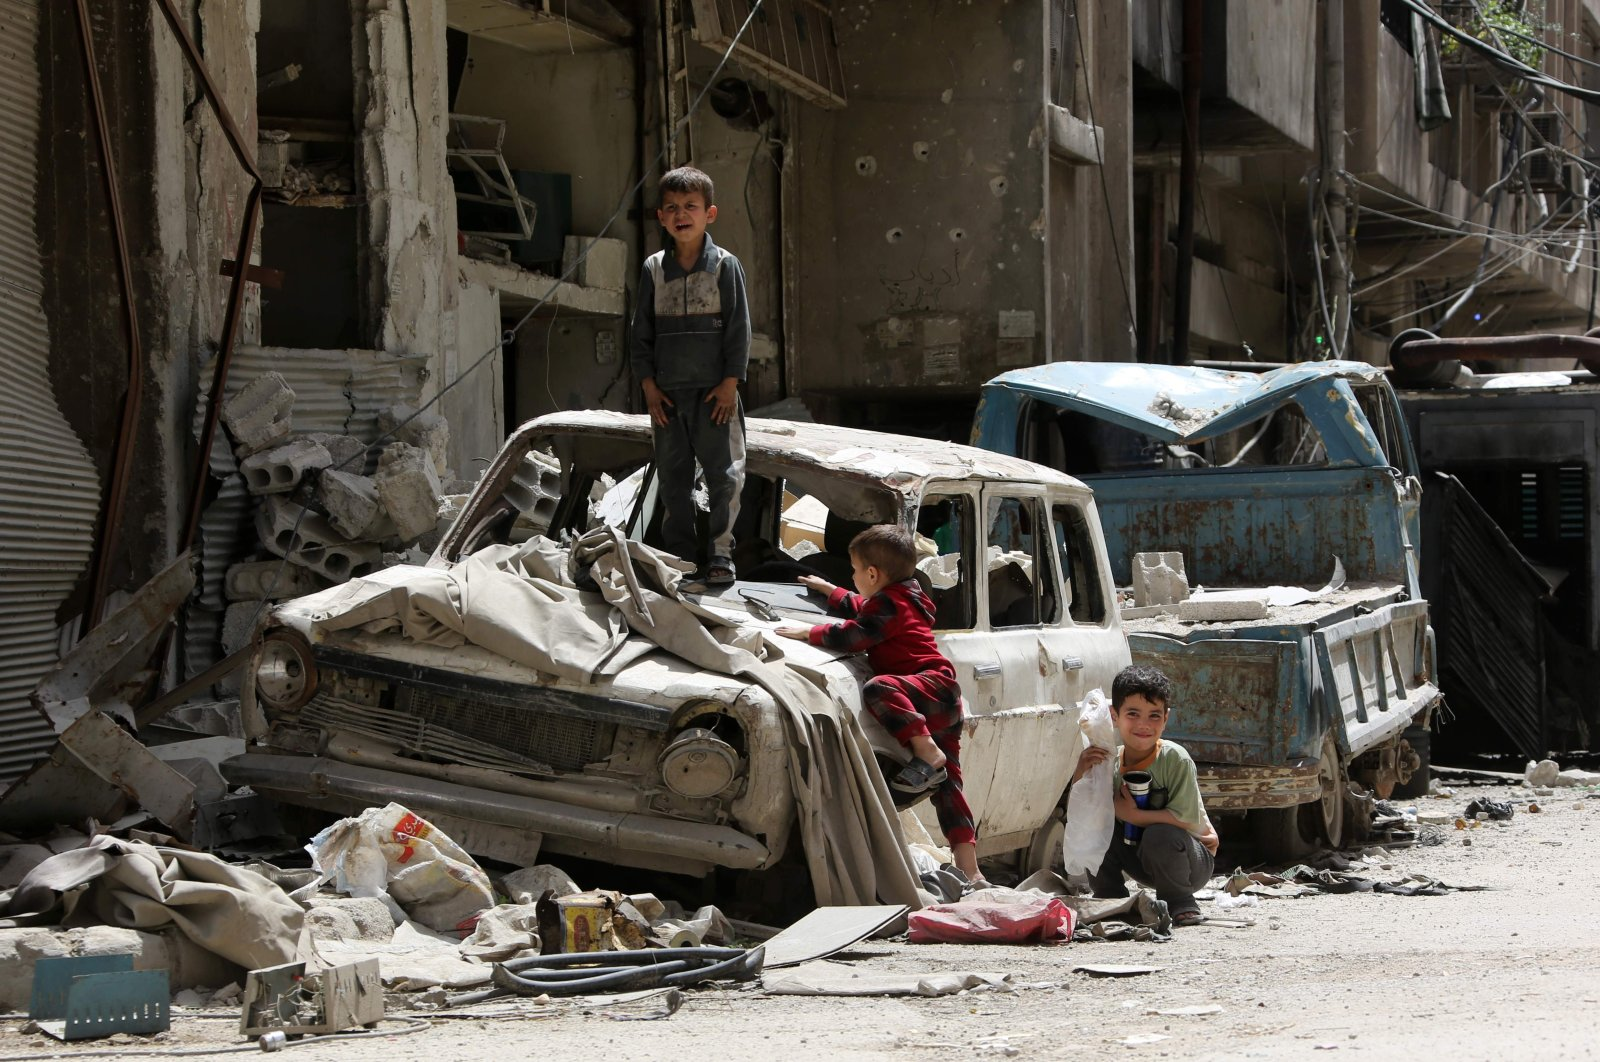 Syrian boys play on a destroyed car in the former opposition-held Syrian town of Douma on the outskirts of Damascus, April 19, 2018. (AFP)